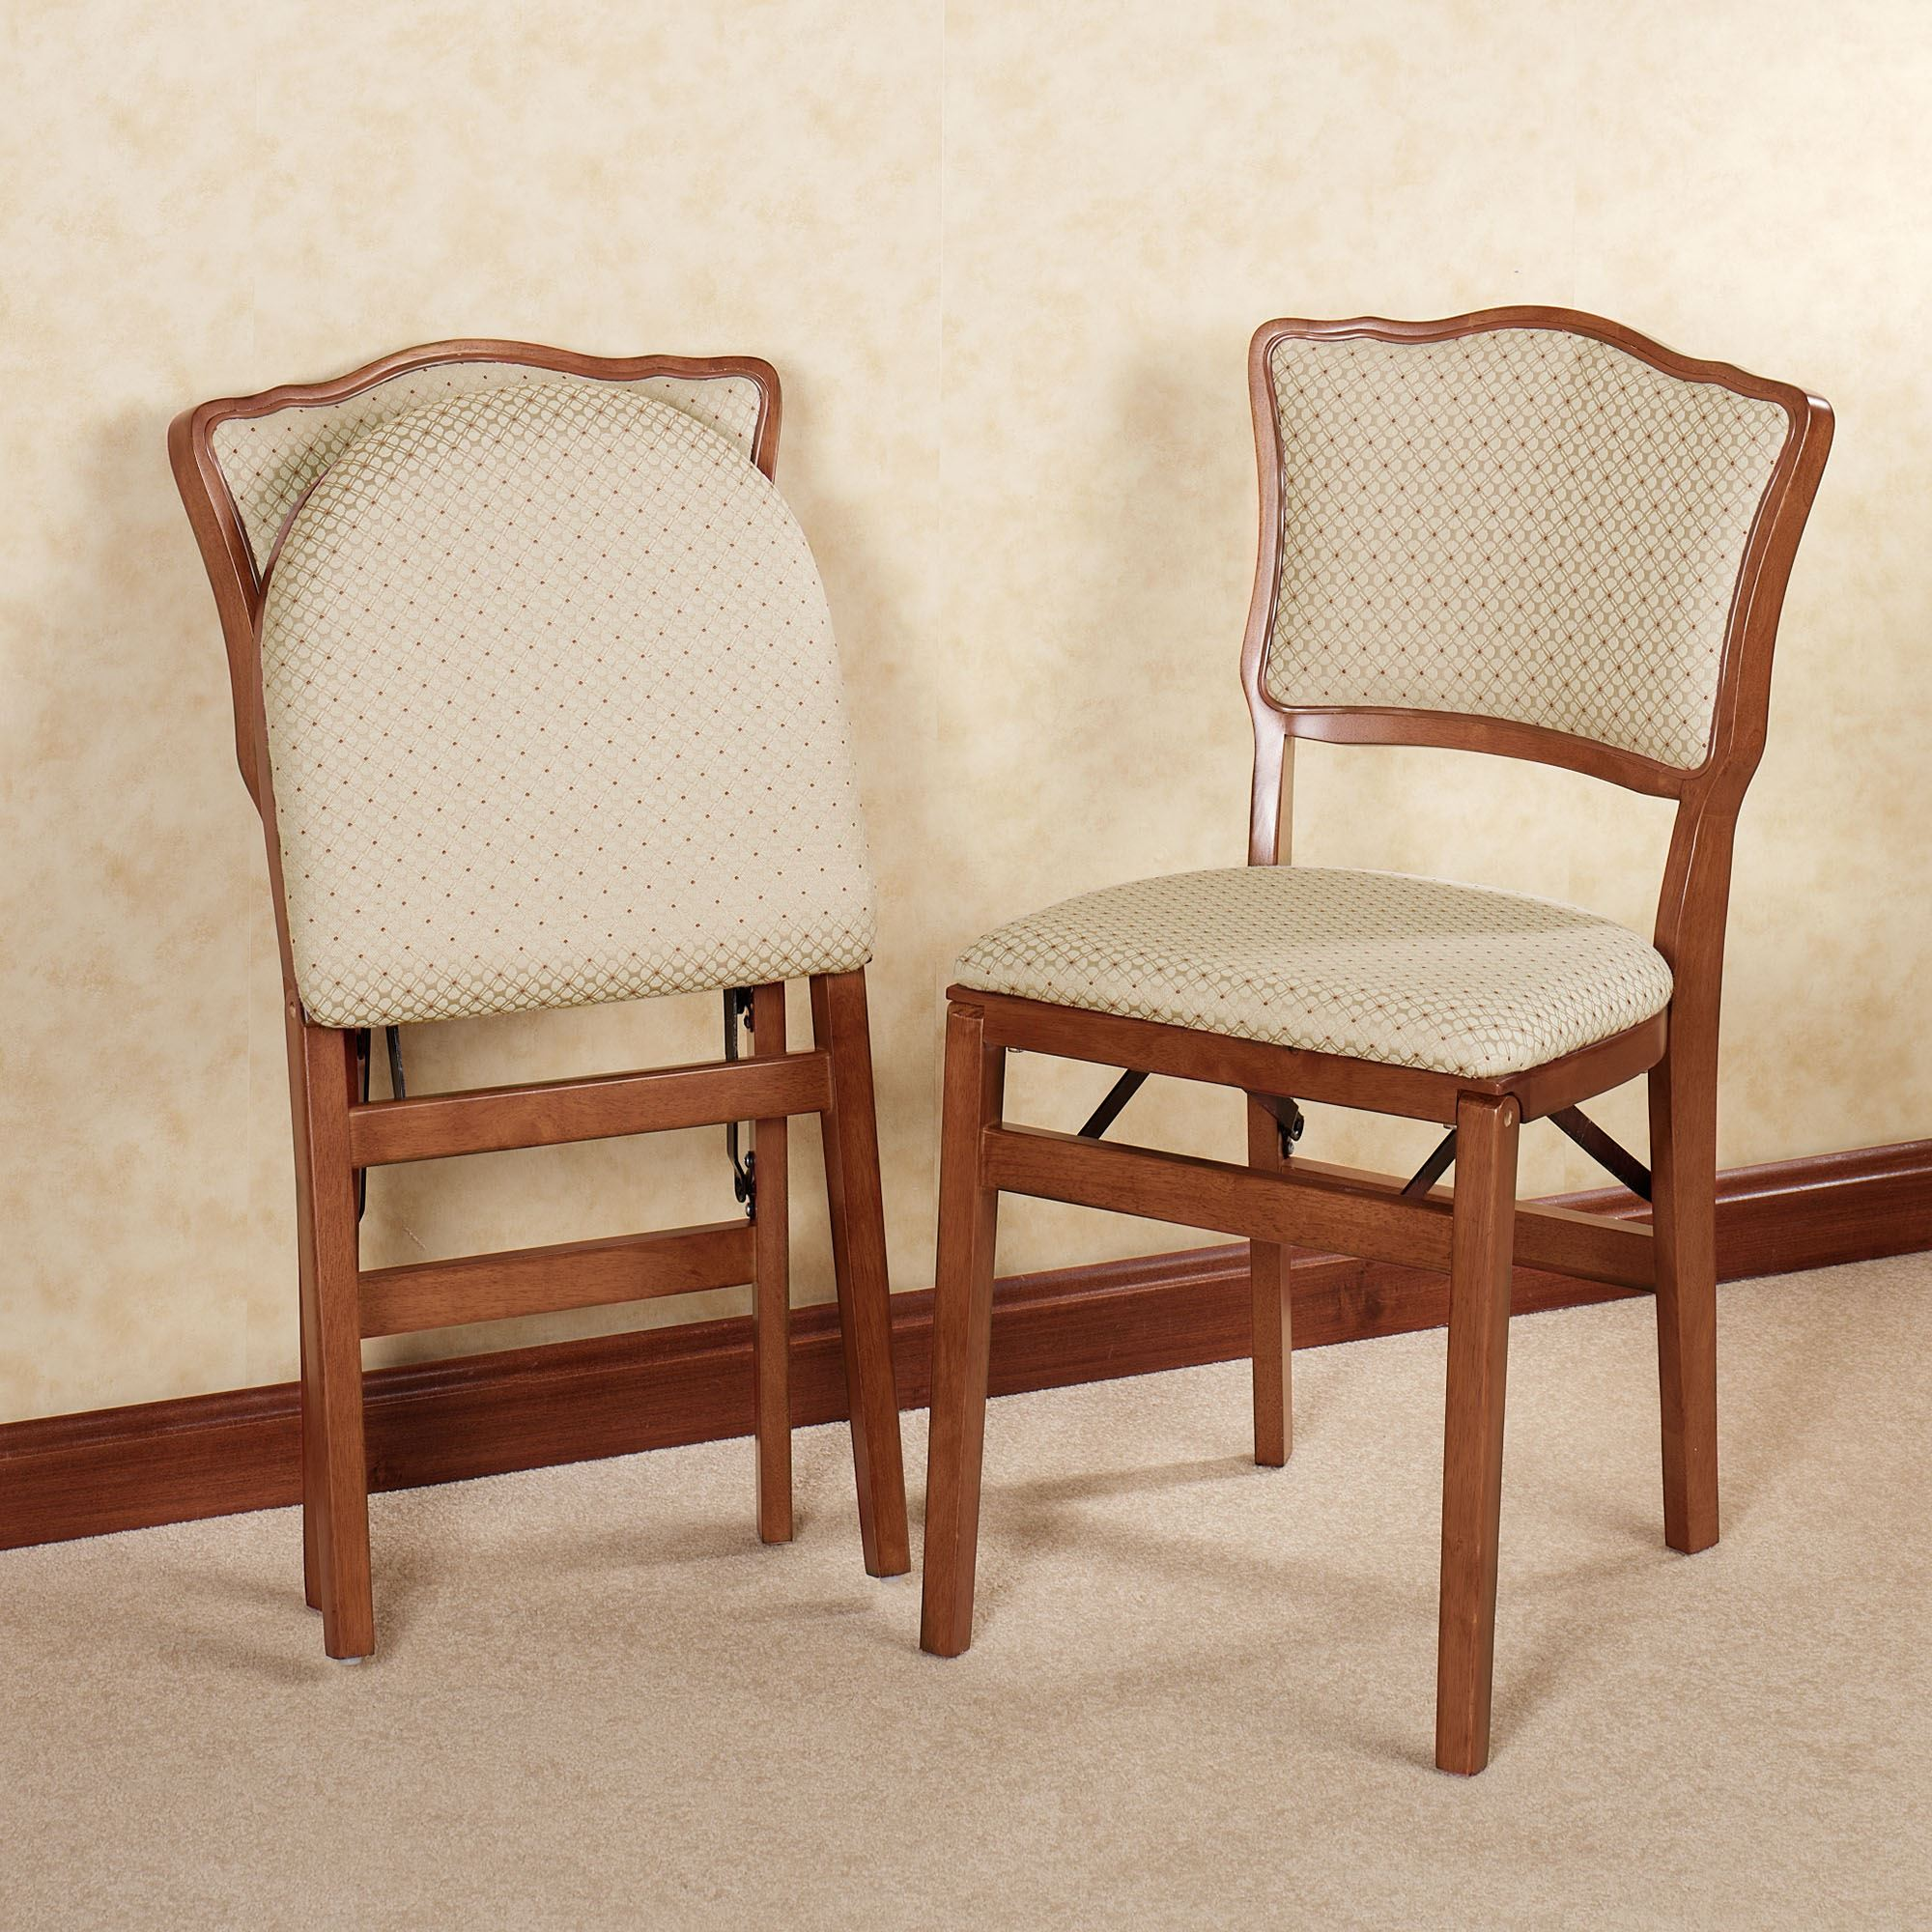 Dover Upholstered Folding Chair Pair